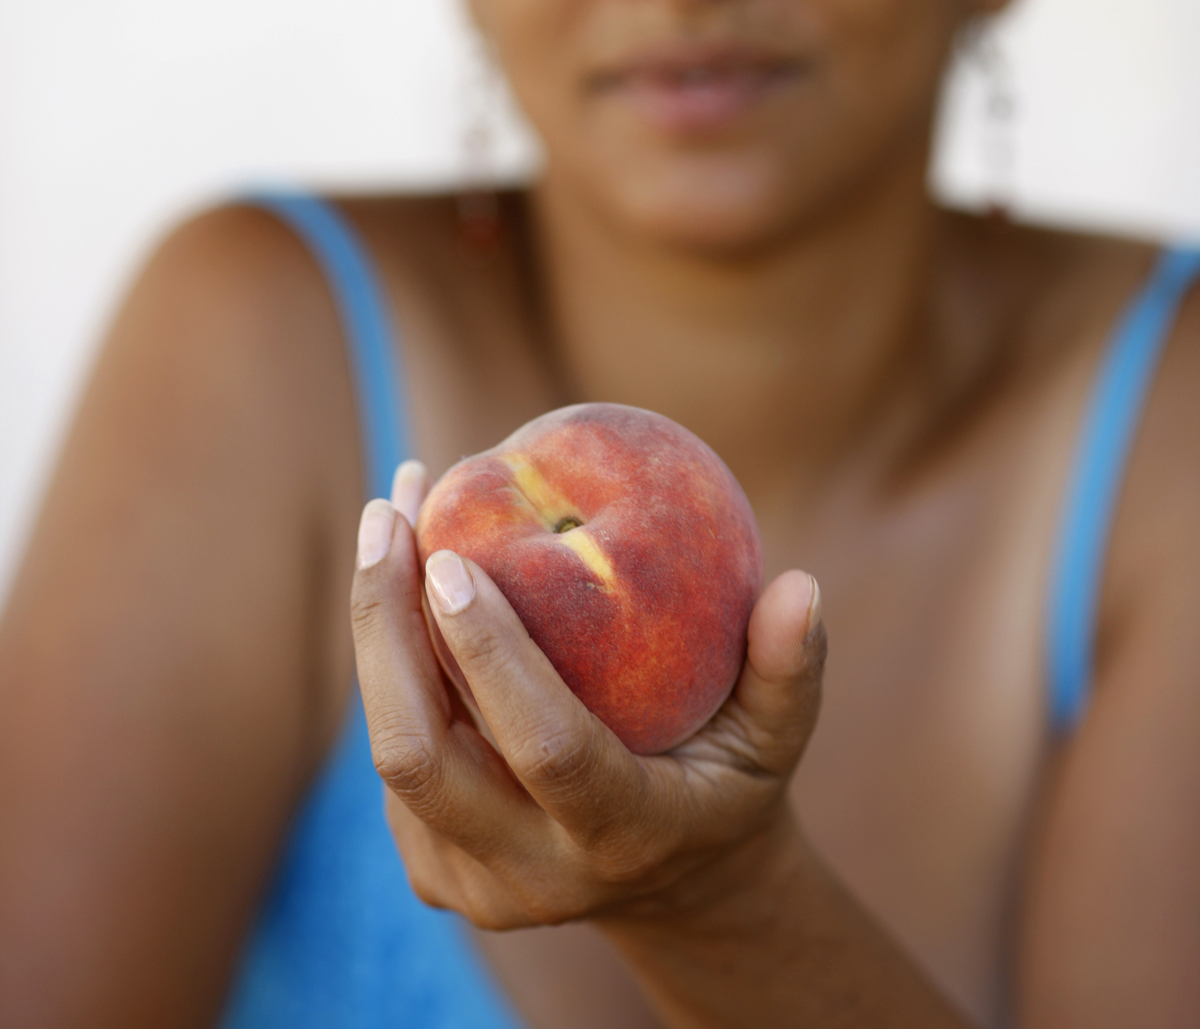 A woman holds a peach.